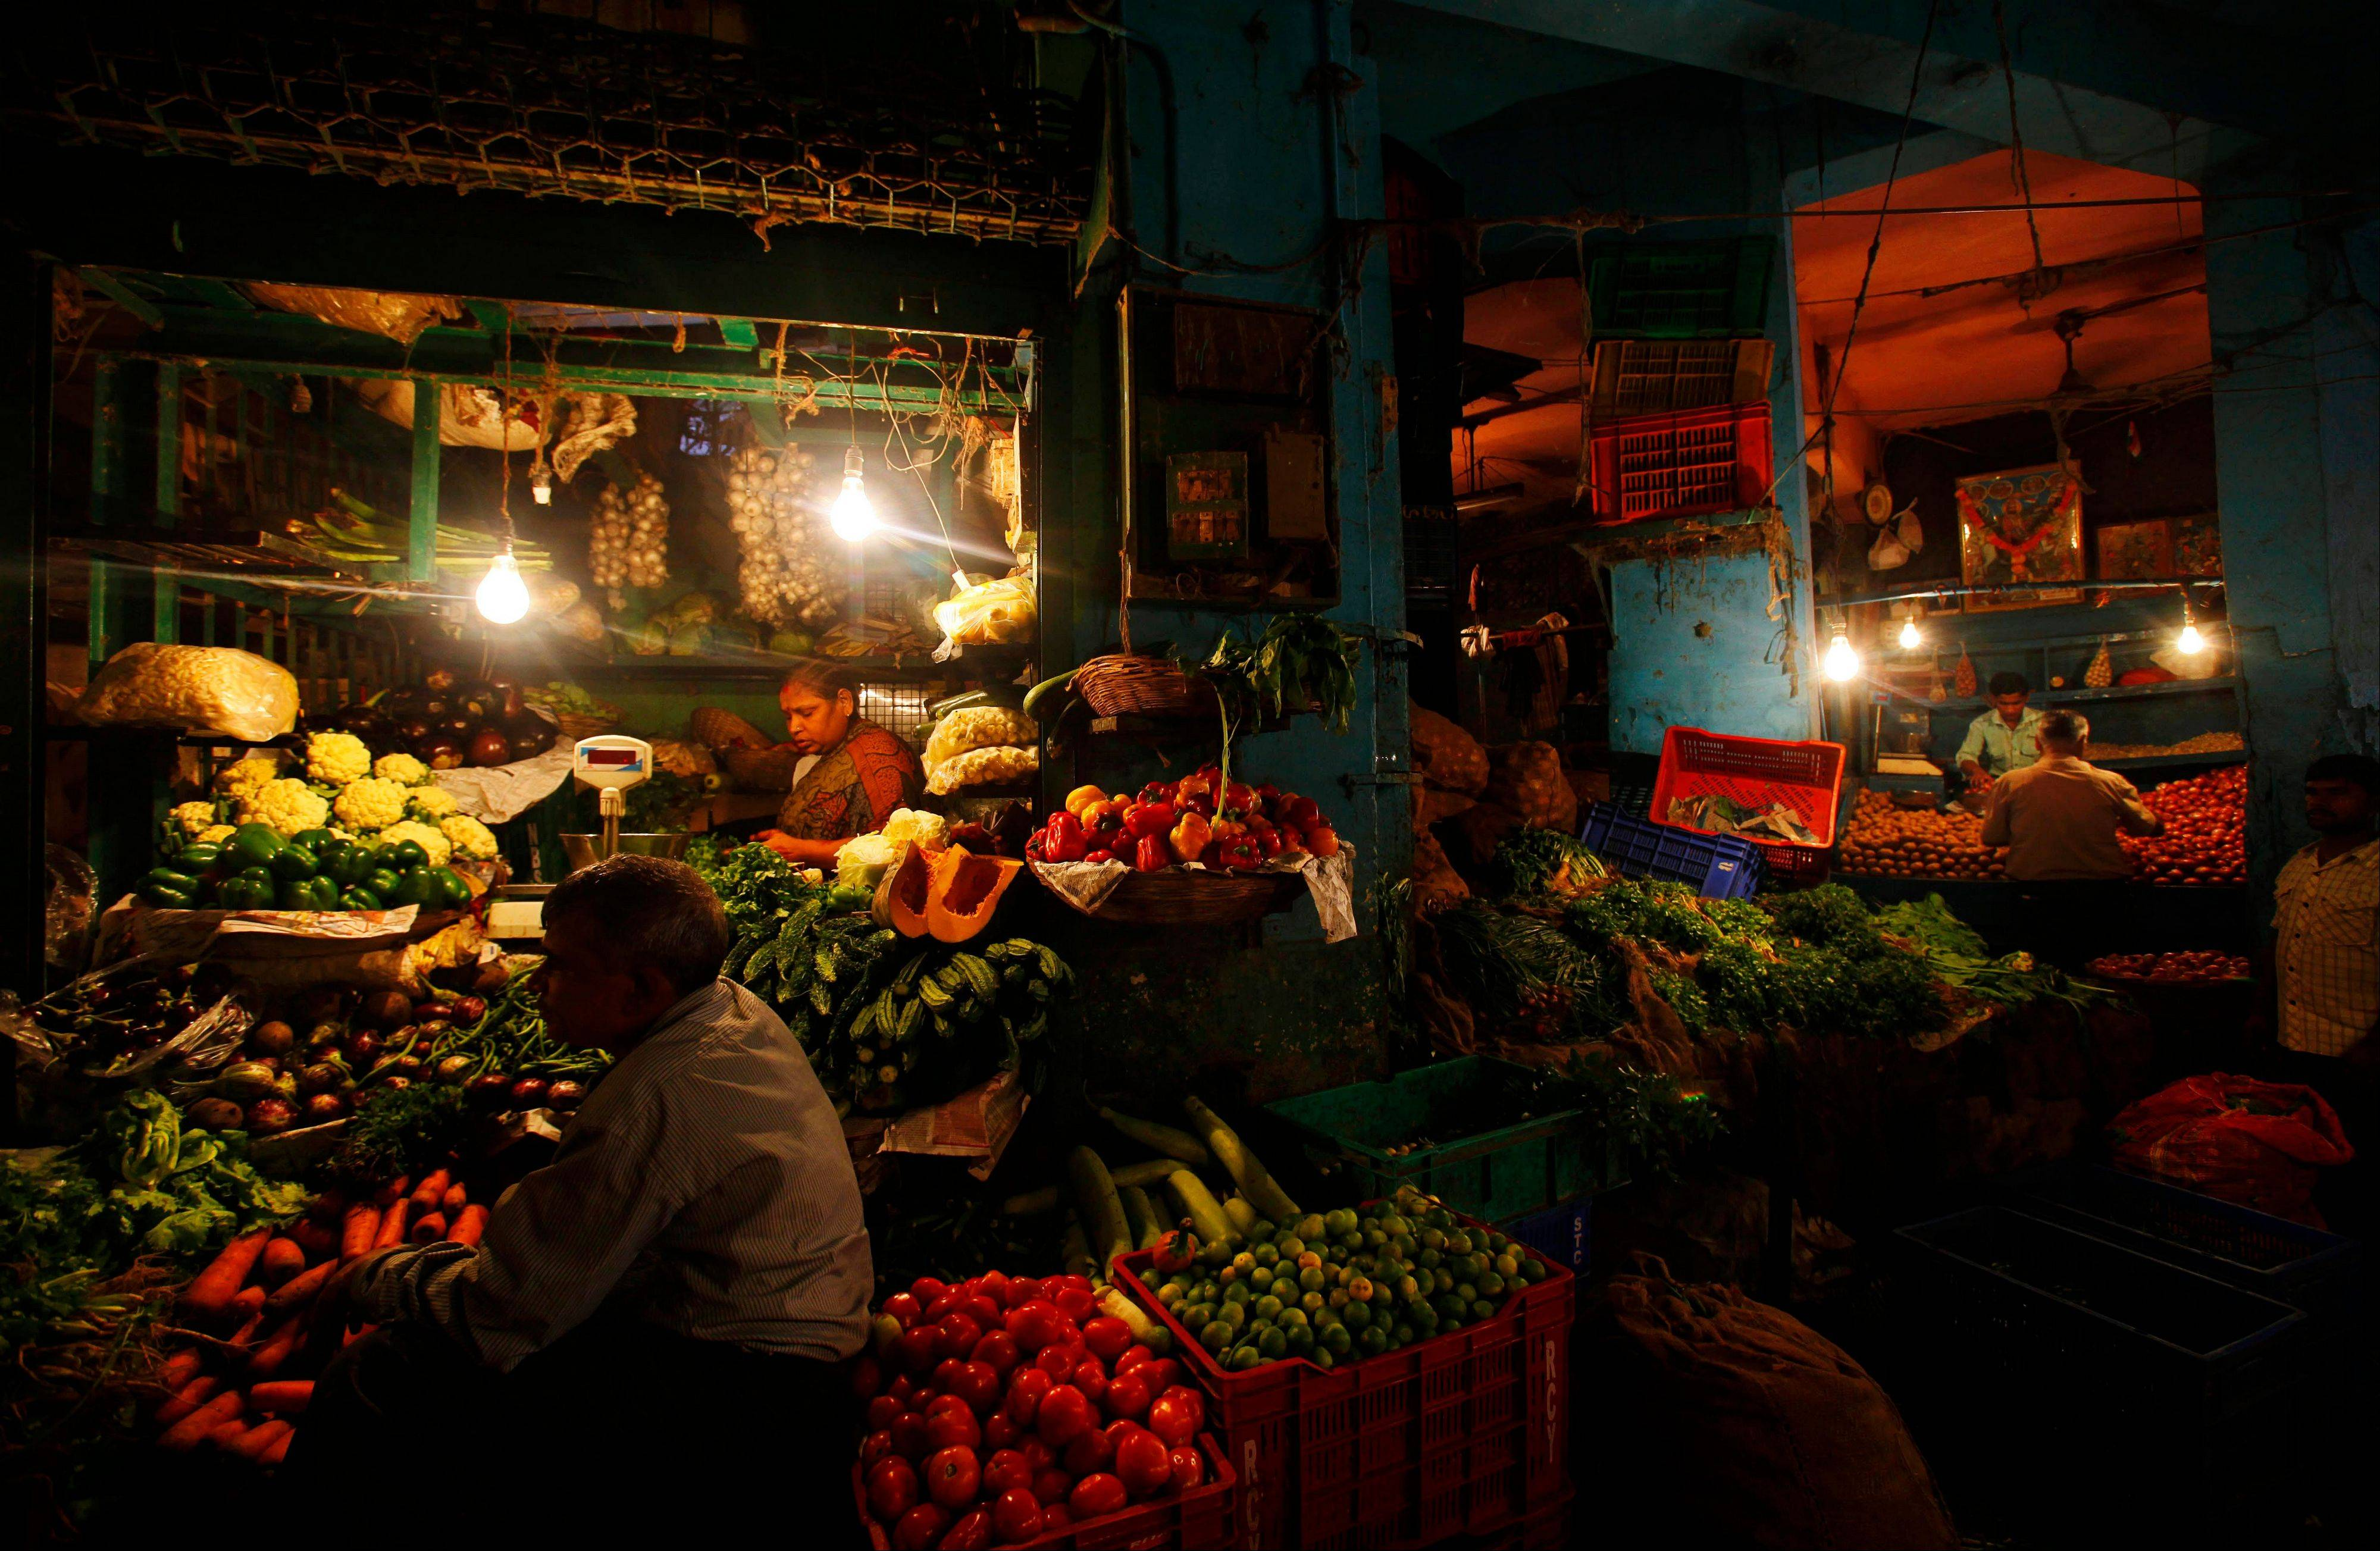 People shop at a vegetable market in Mumbai, India, Monday, Sept. 17, 2012. India's central bank, Reserve Bank of India, on Monday cut the cash reserve ratio as it tries to